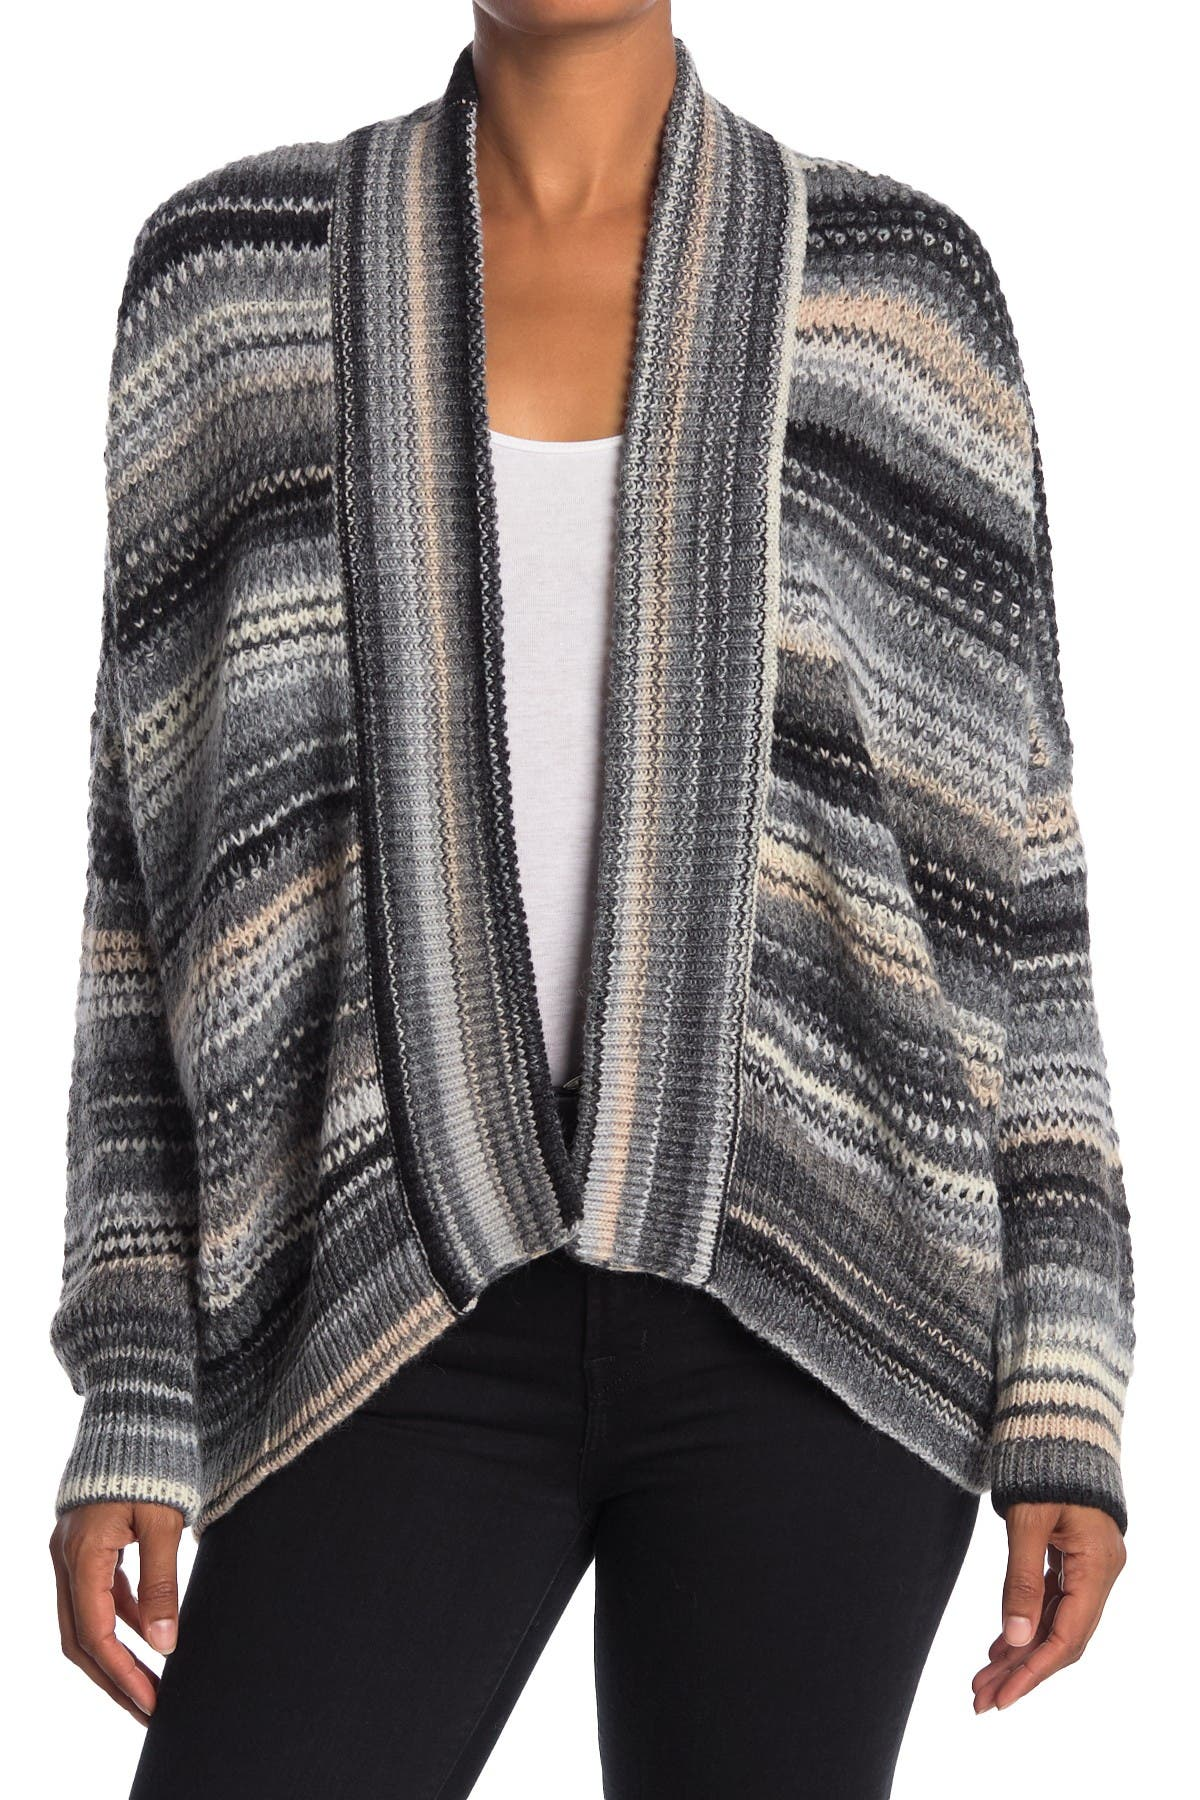 Image of Zadig & Voltaire Tanya Striped Dolman Wool Blend Cardigan